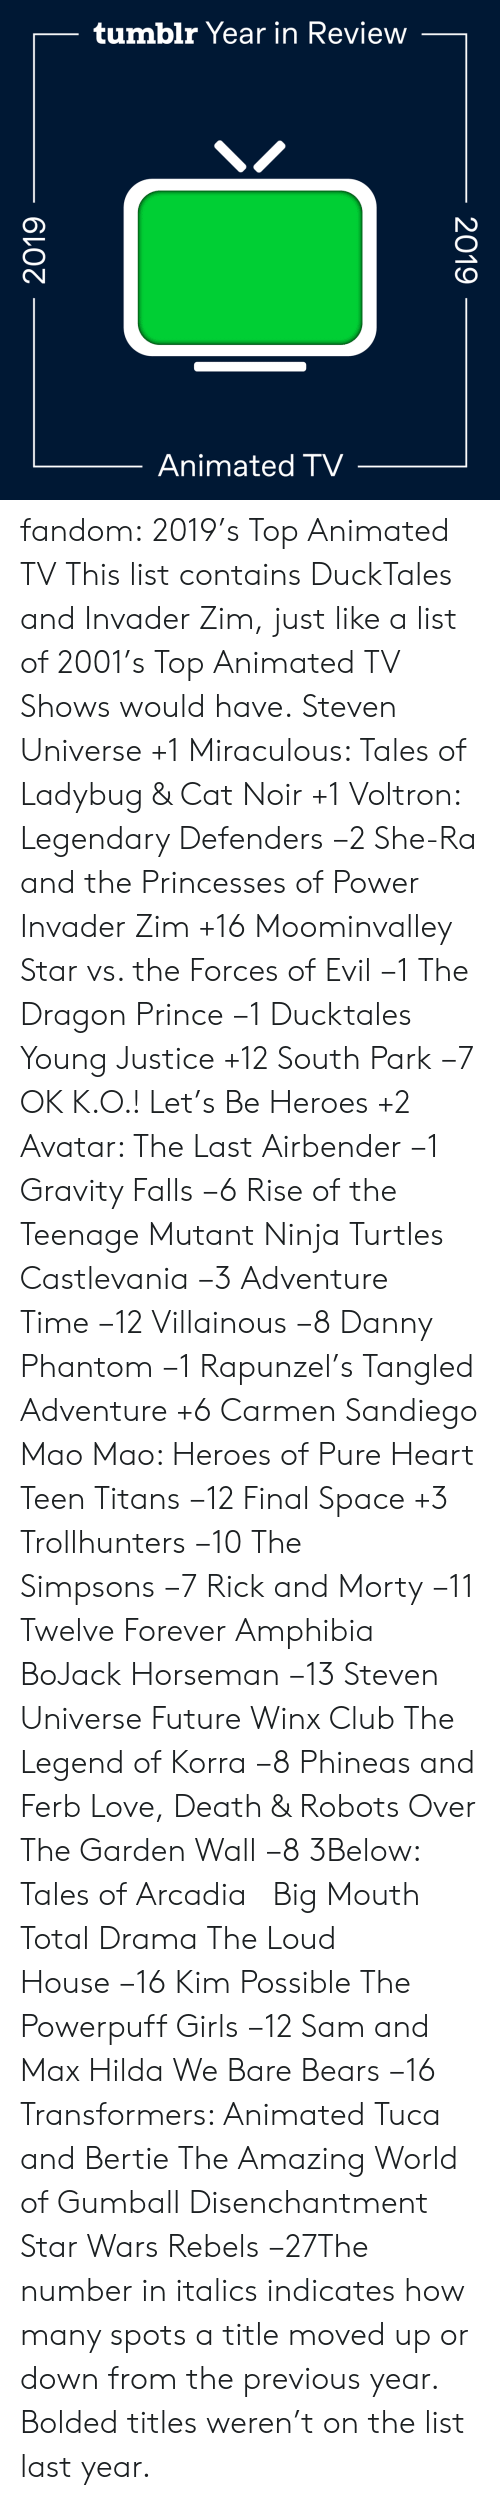 Max: tumblr Year in Review  Animated TV  2019  2019 fandom:  2019's Top Animated TV  This list contains DuckTales and Invader Zim, just like a list of 2001's Top Animated TV Shows would have.  Steven Universe +1  Miraculous: Tales of Ladybug & Cat Noir +1  Voltron: Legendary Defenders −2  She-Ra and the Princesses of Power   Invader Zim +16  Moominvalley  Star vs. the Forces of Evil −1  The Dragon Prince −1  Ducktales  Young Justice +12  South Park −7  OK K.O.! Let's Be Heroes +2  Avatar: The Last Airbender −1  Gravity Falls −6  Rise of the Teenage Mutant Ninja Turtles  Castlevania −3  Adventure Time −12  Villainous −8  Danny Phantom −1  Rapunzel's Tangled Adventure +6  Carmen Sandiego  Mao Mao: Heroes of Pure Heart  Teen Titans −12  Final Space +3  Trollhunters −10  The Simpsons −7  Rick and Morty −11  Twelve Forever  Amphibia  BoJack Horseman −13  Steven Universe Future  Winx Club  The Legend of Korra −8  Phineas and Ferb  Love, Death & Robots  Over The Garden Wall −8  3Below: Tales of Arcadia    Big Mouth  Total Drama  The Loud House −16  Kim Possible  The Powerpuff Girls −12  Sam and Max  Hilda  We Bare Bears −16  Transformers: Animated  Tuca and Bertie  The Amazing World of Gumball  Disenchantment Star Wars Rebels −27The number in italics indicates how many spots a title moved up or down from the previous year. Bolded titles weren't on the list last year.